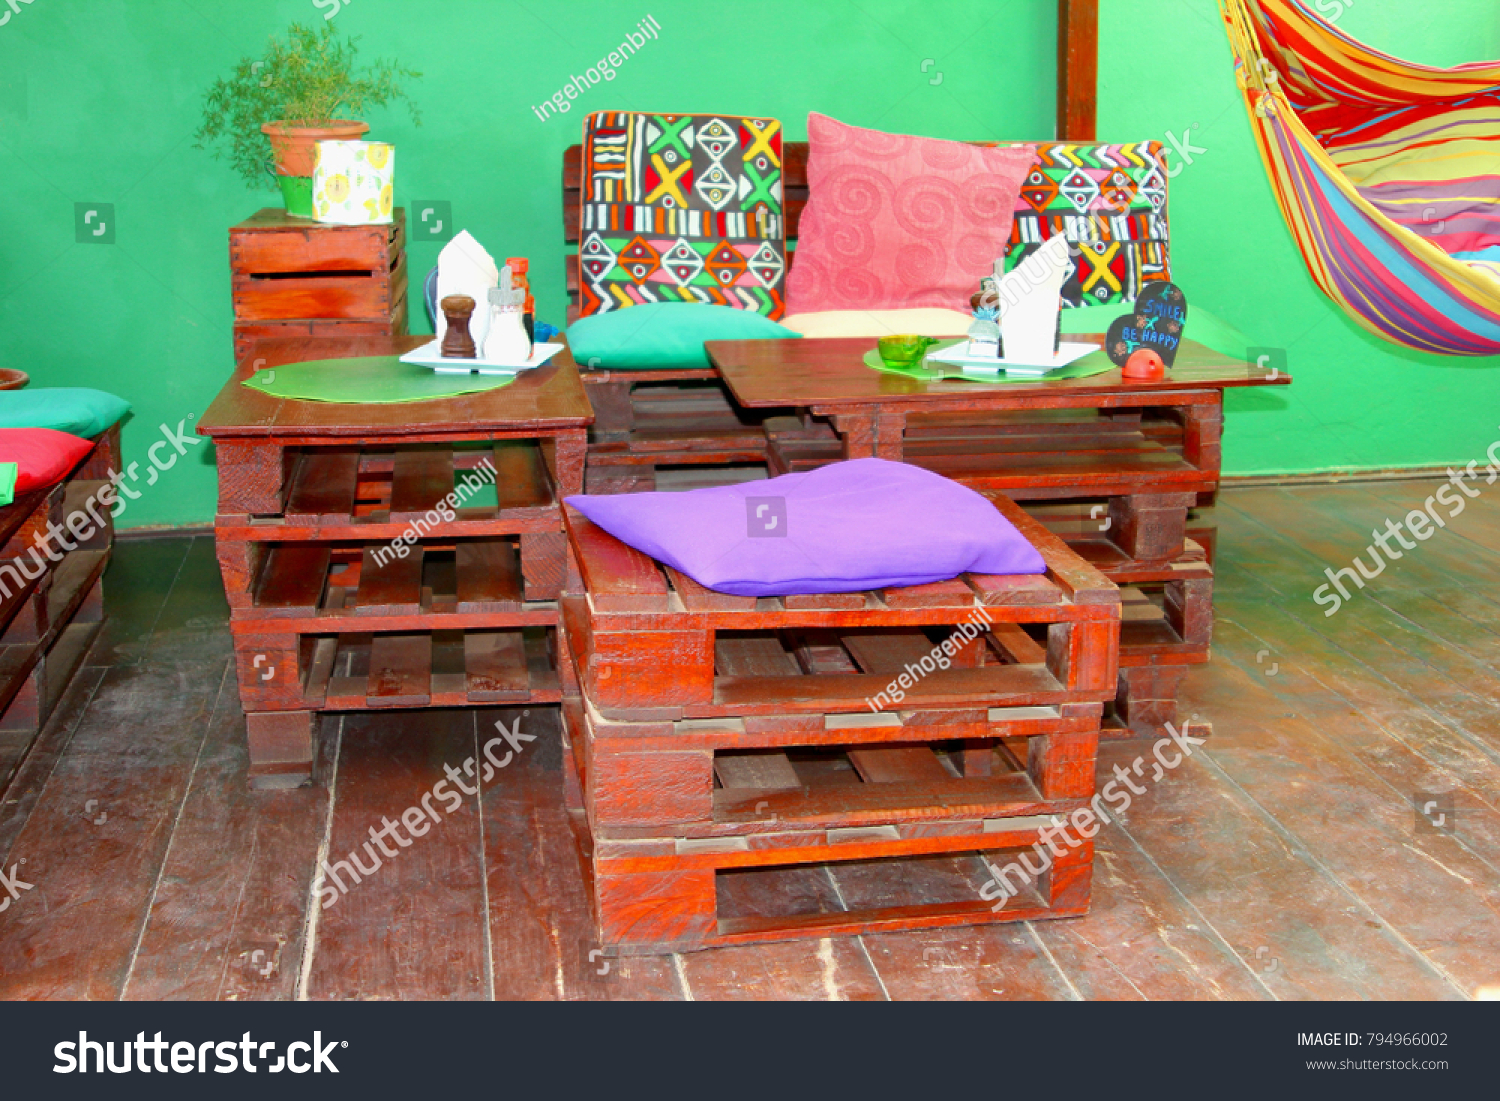 recycled wooden furniture. Colorful African Interior, Recycled Wood Pallet Furniture And Hammock Wooden